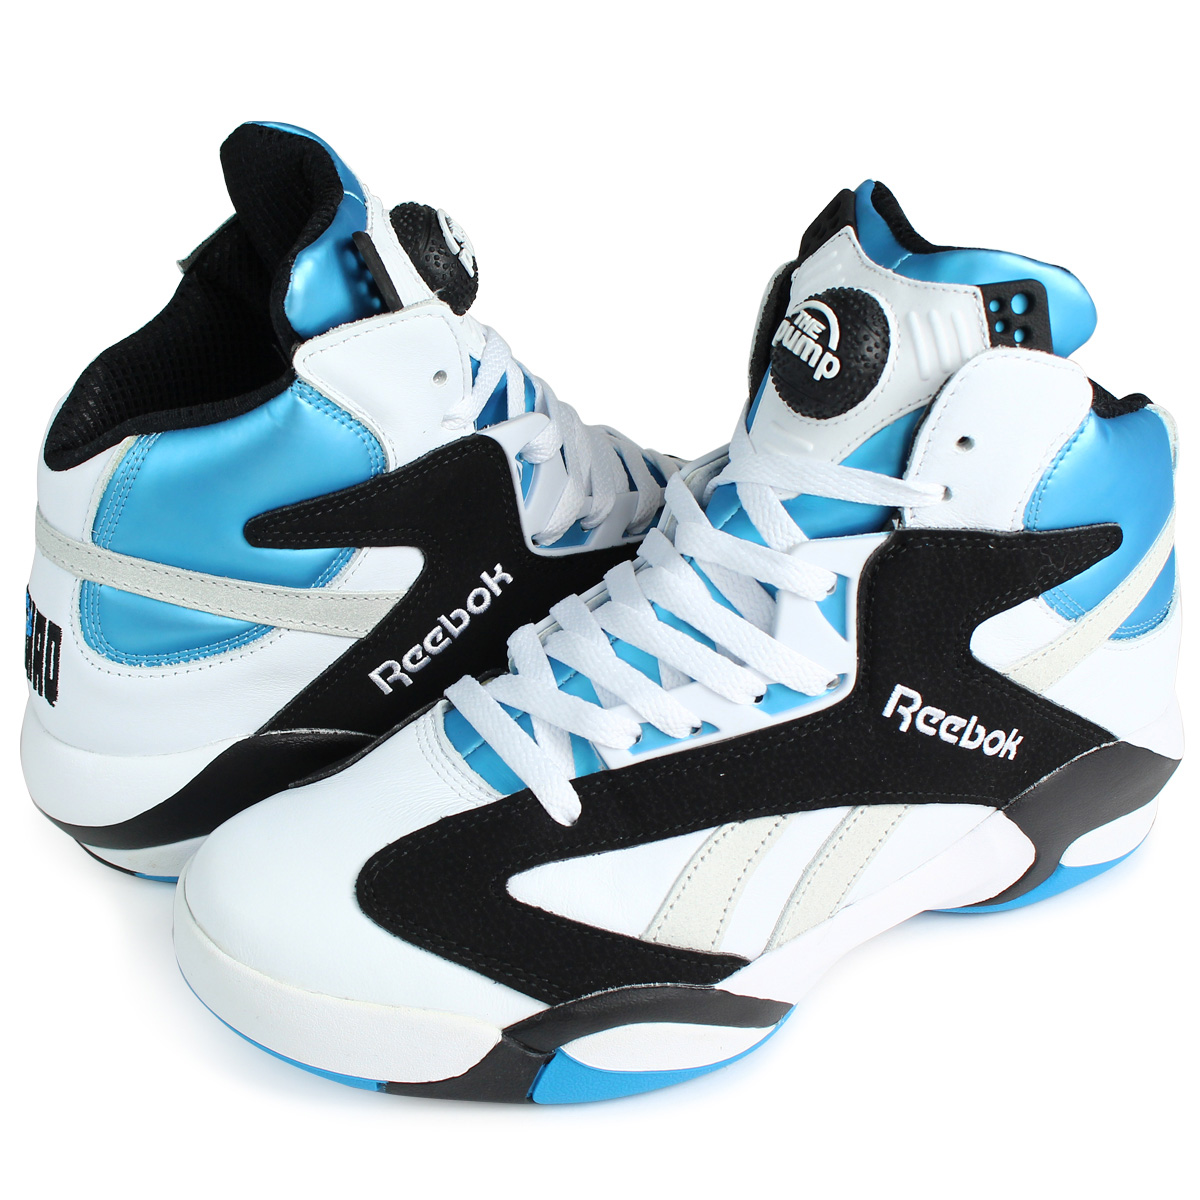 53d33860adbf Reebok SHAQ ATTAQ OG shack attack sneakers Reebok V47195 men shoes white   11 29 Shinnyu load   1117